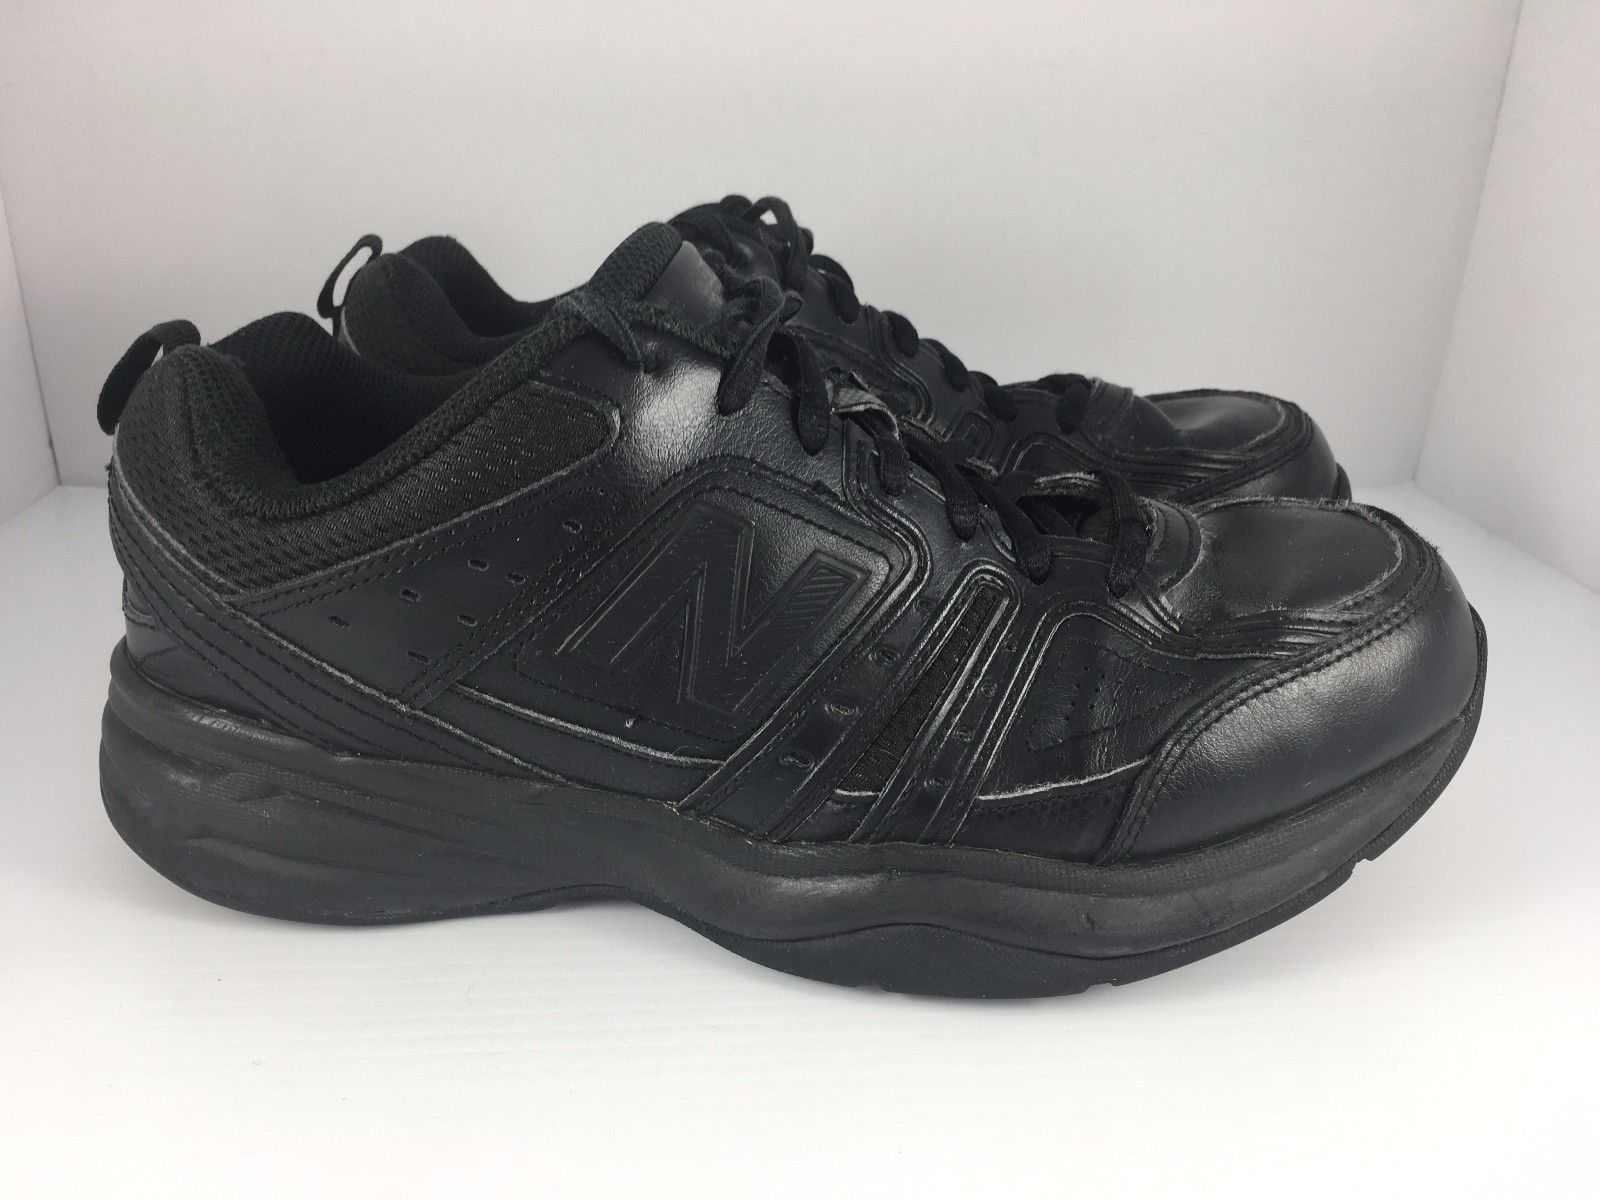 the best attitude 88341 05ec7 New Balance 409 Men US 8 4E Black Athletic Trainers Running Walking Shoes  J35